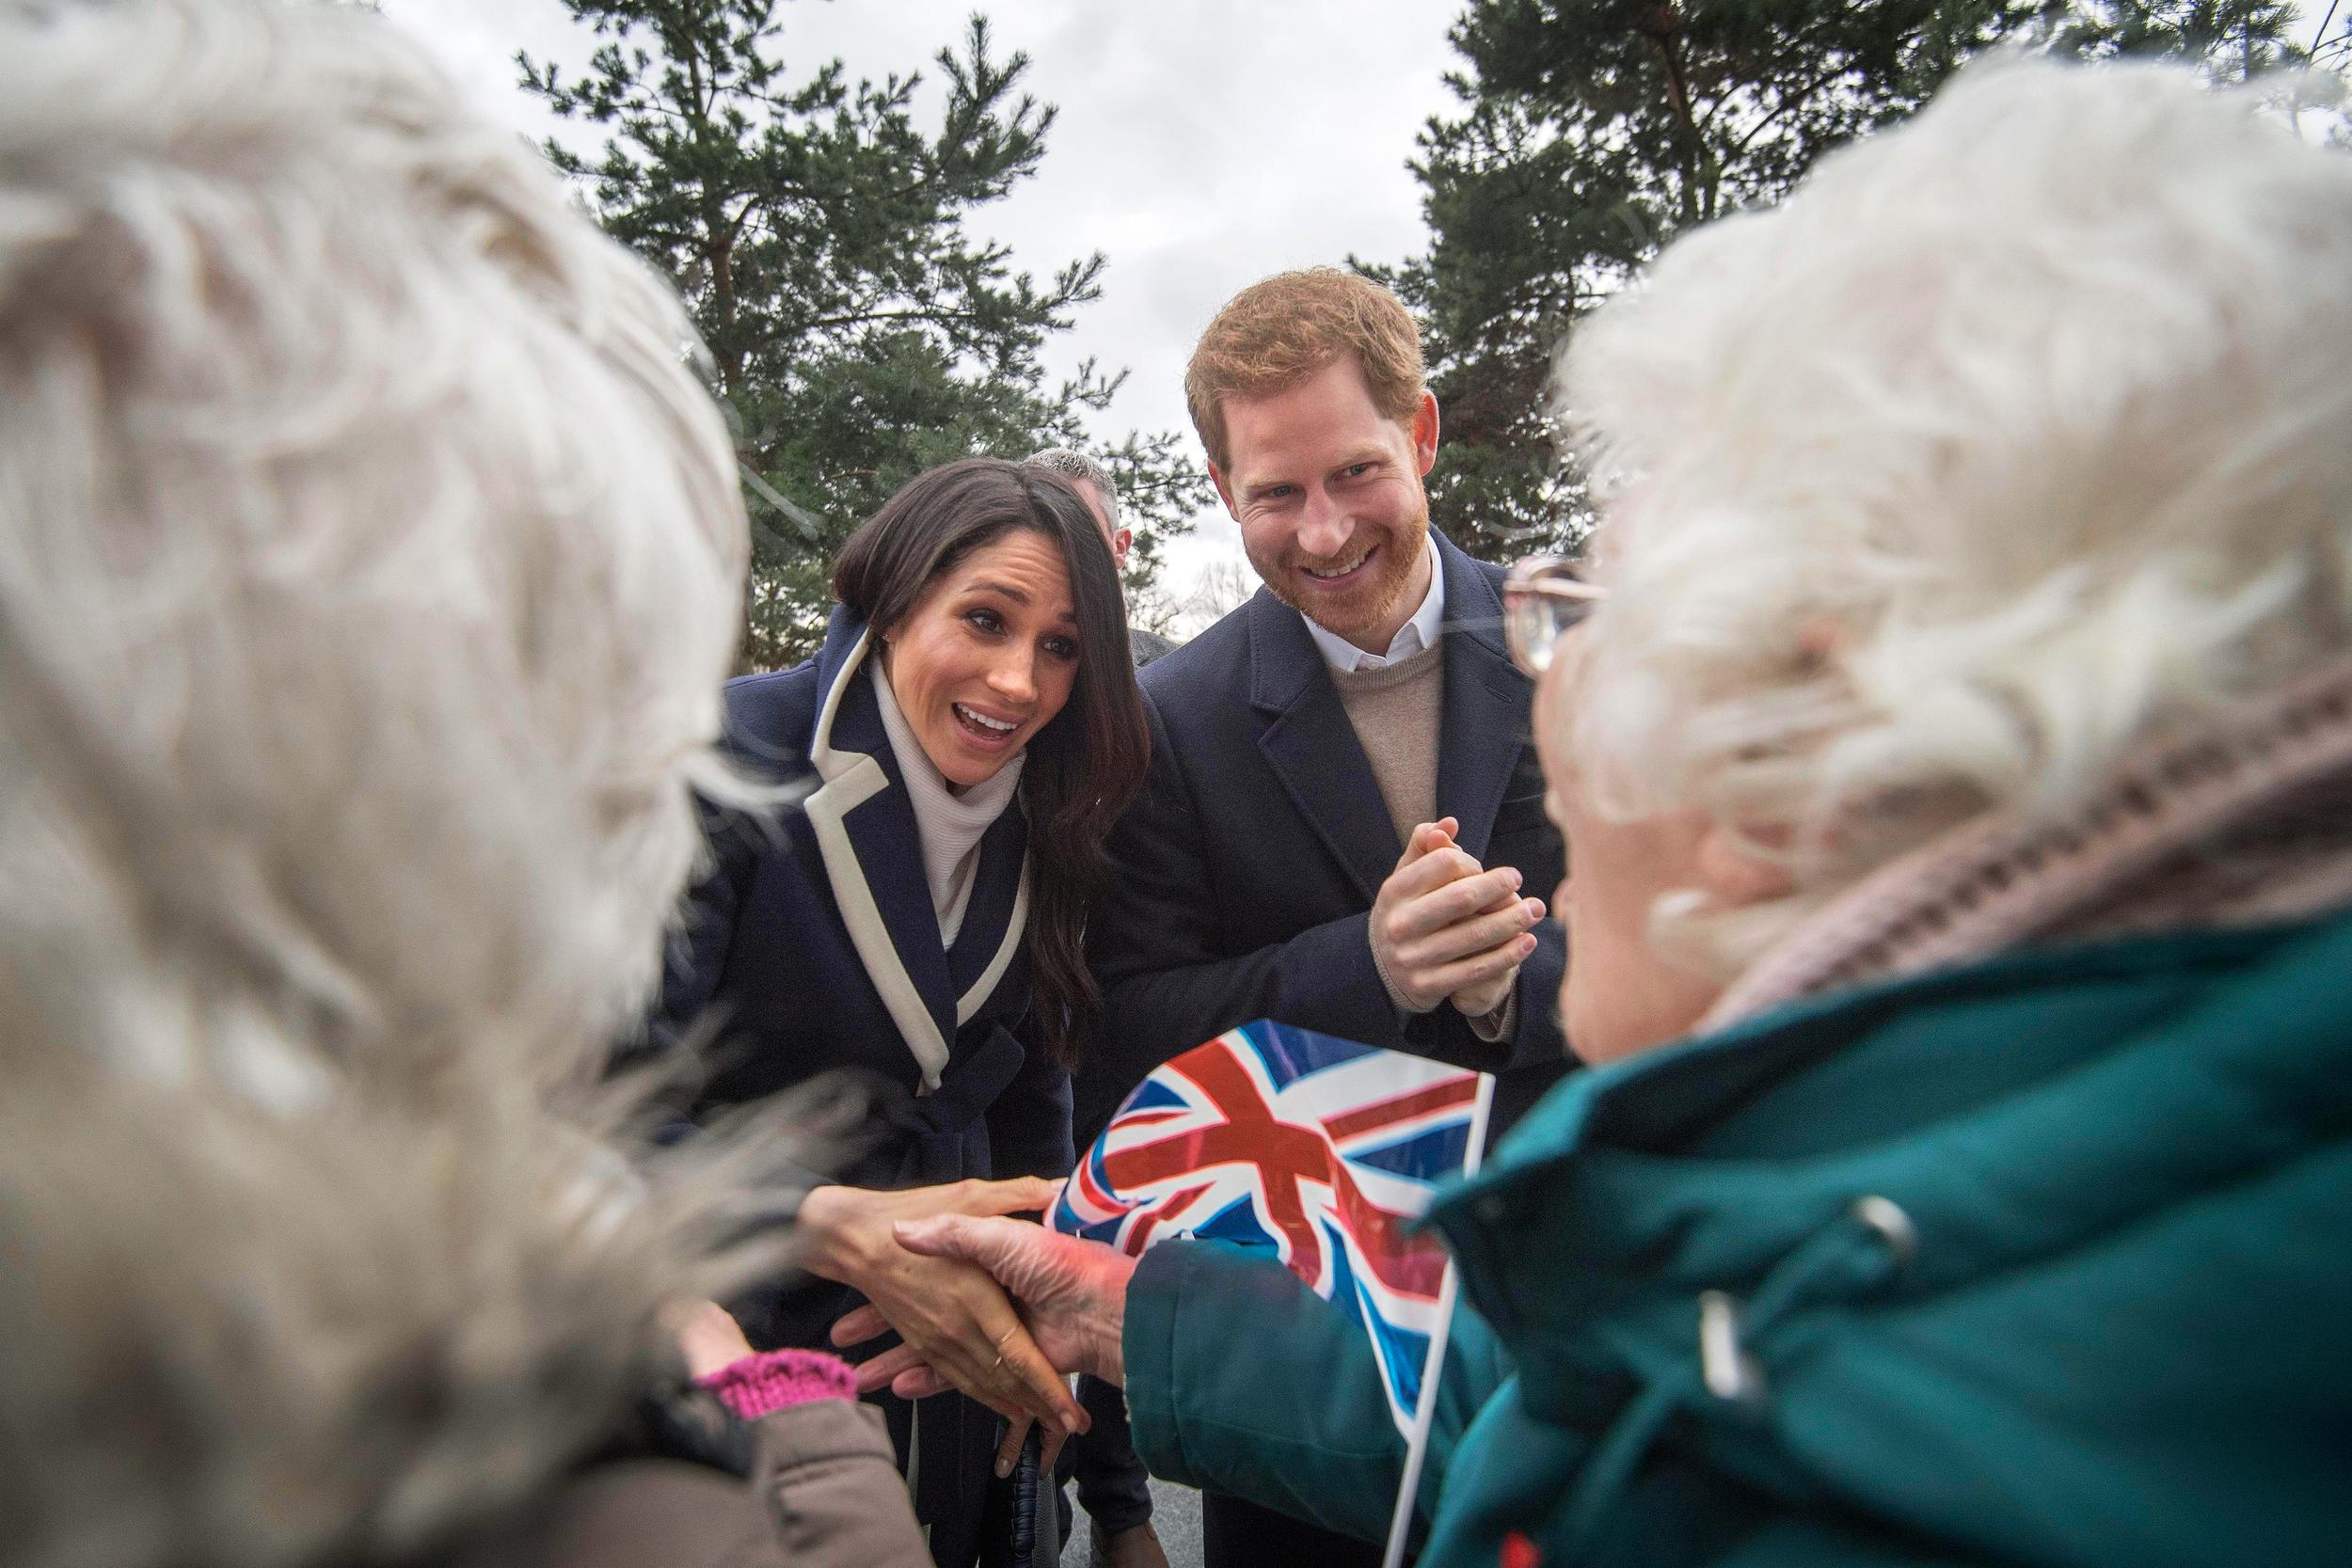 Prince Harry and Meghan Markle talk to sisters Jean Dickinson and Irene Gould on a walkabout during a visit to Millennium Point in Birmingham, as part of the latest leg in the regional tours the couple are undertaking in the run-up to their May wedding.